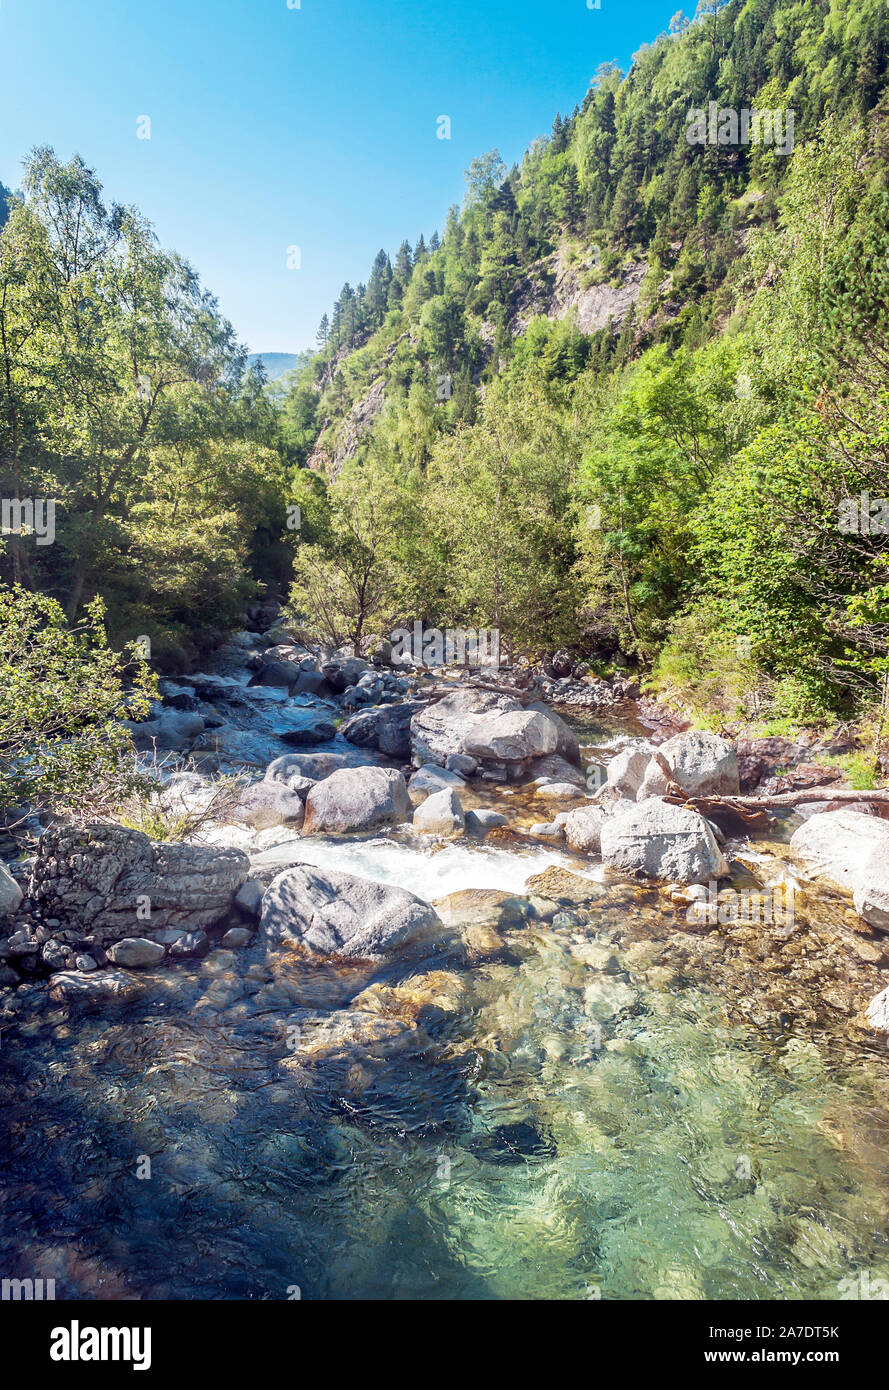 River in the Benasque valley in the Pyrenees mountains Stock Photo